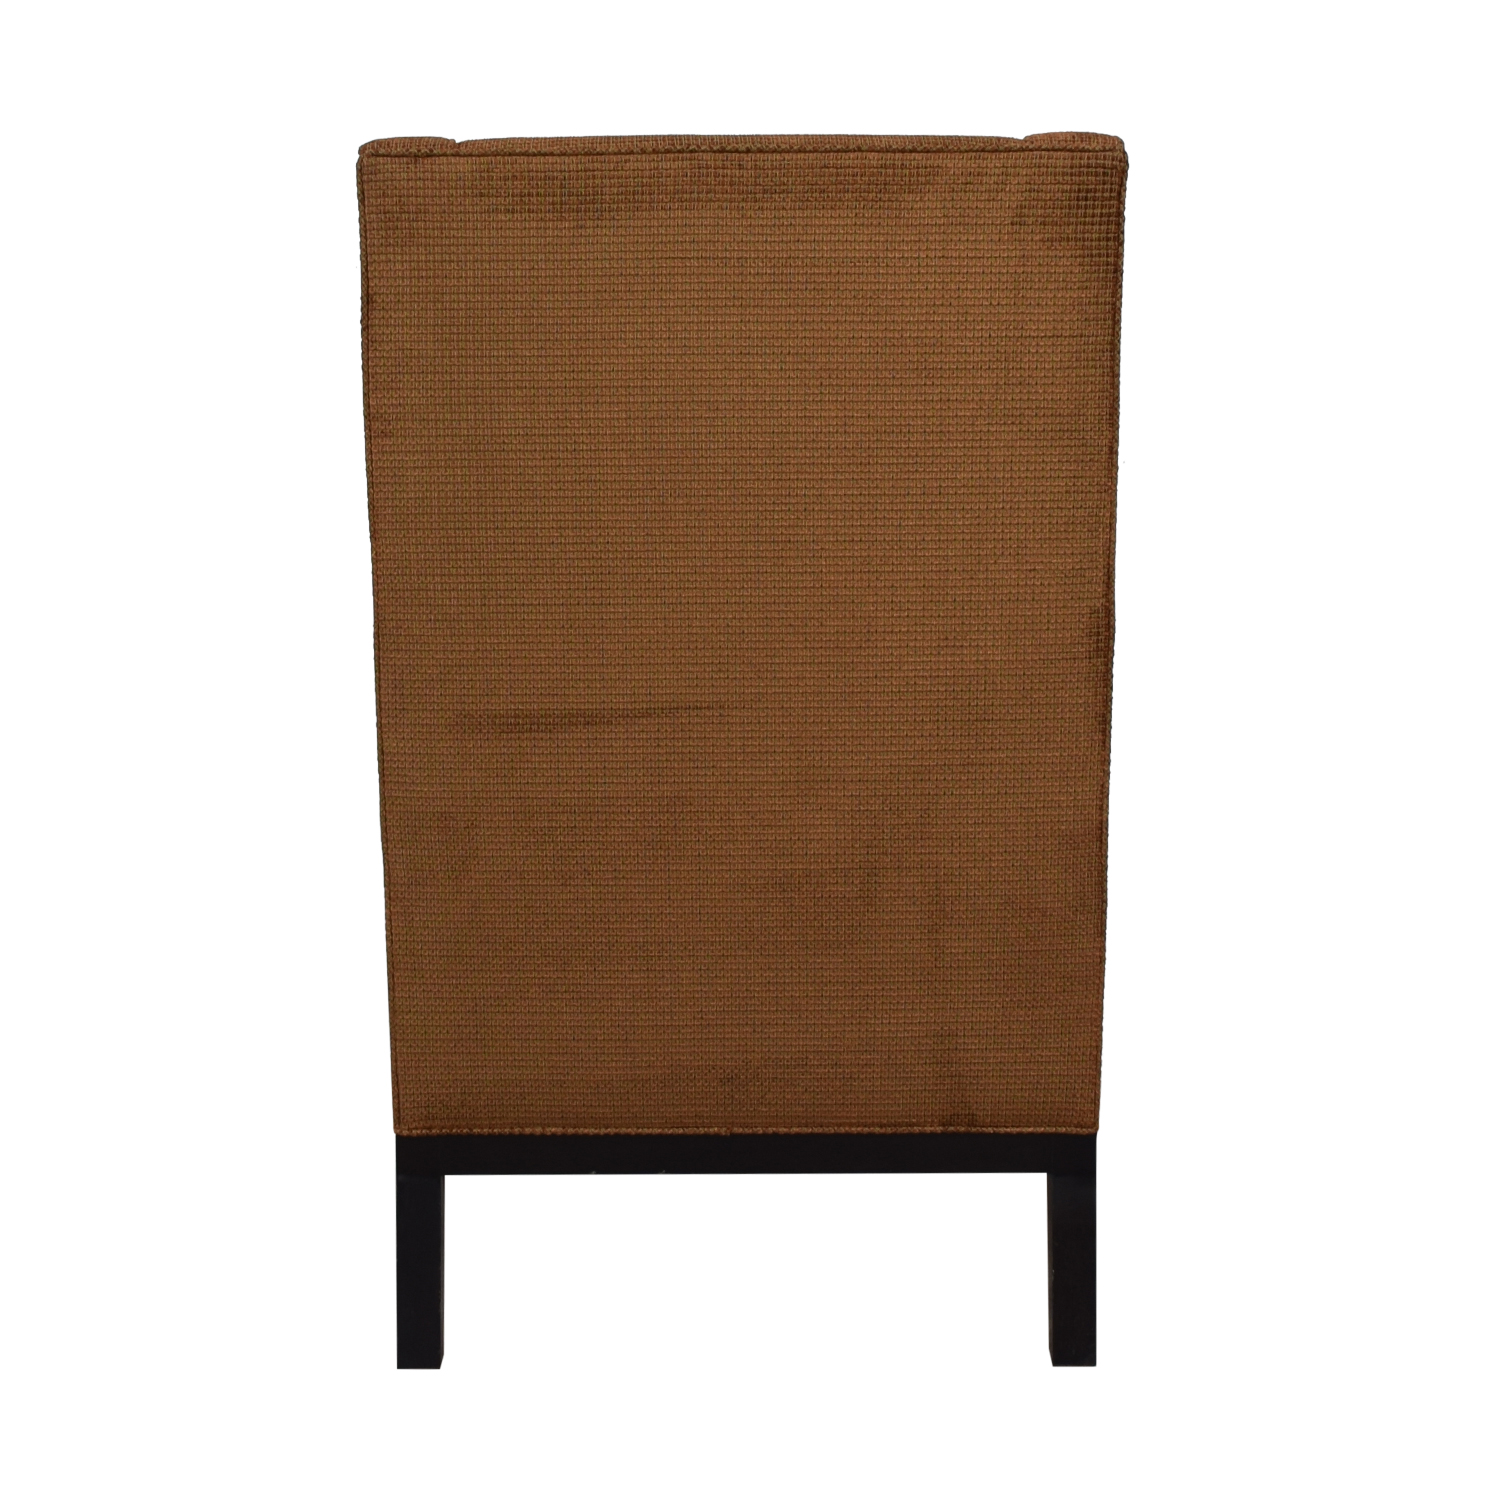 Furniture Masters Brown Upholstered Accent Chair Furniture Masters